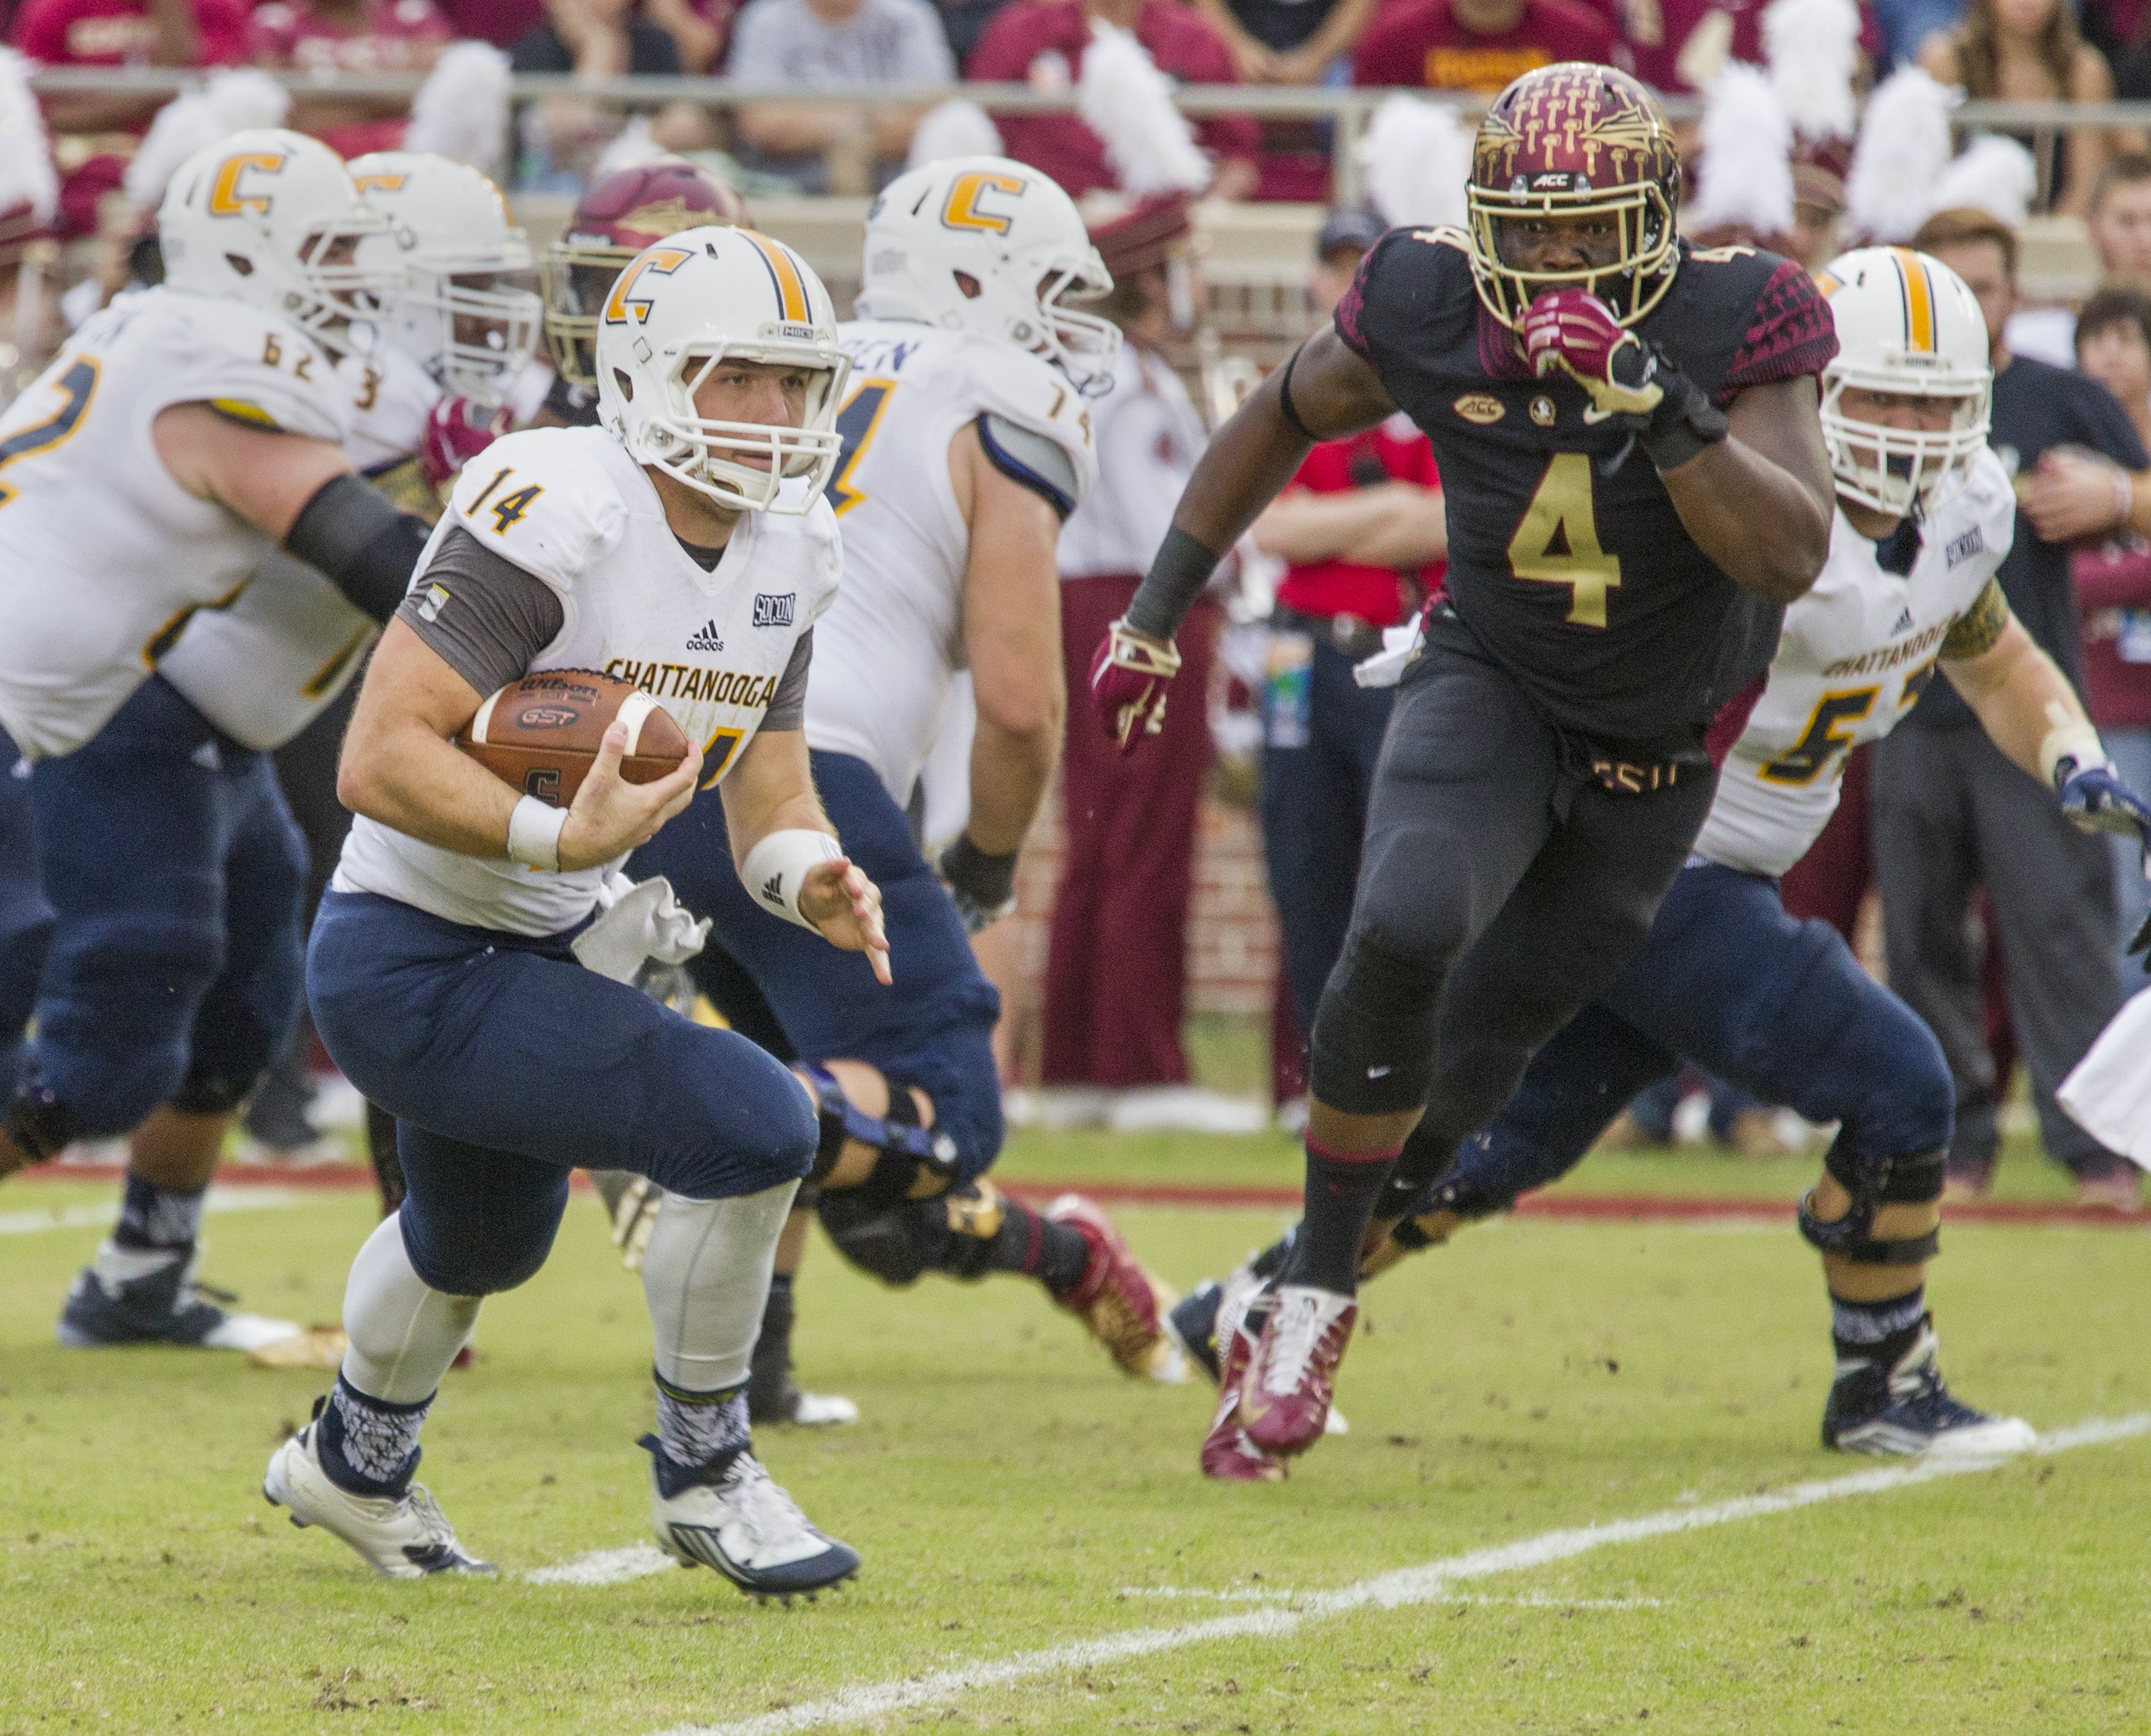 Chattanooga quarterback Jacob Huesman scrambles in the first half of an NCAA college football game in Tallahassee, Fla., Saturday, Nov. 21, 2015.  Florida State defeated Chattanooga 52-13.  (AP Photo/Mark Wallheiser)